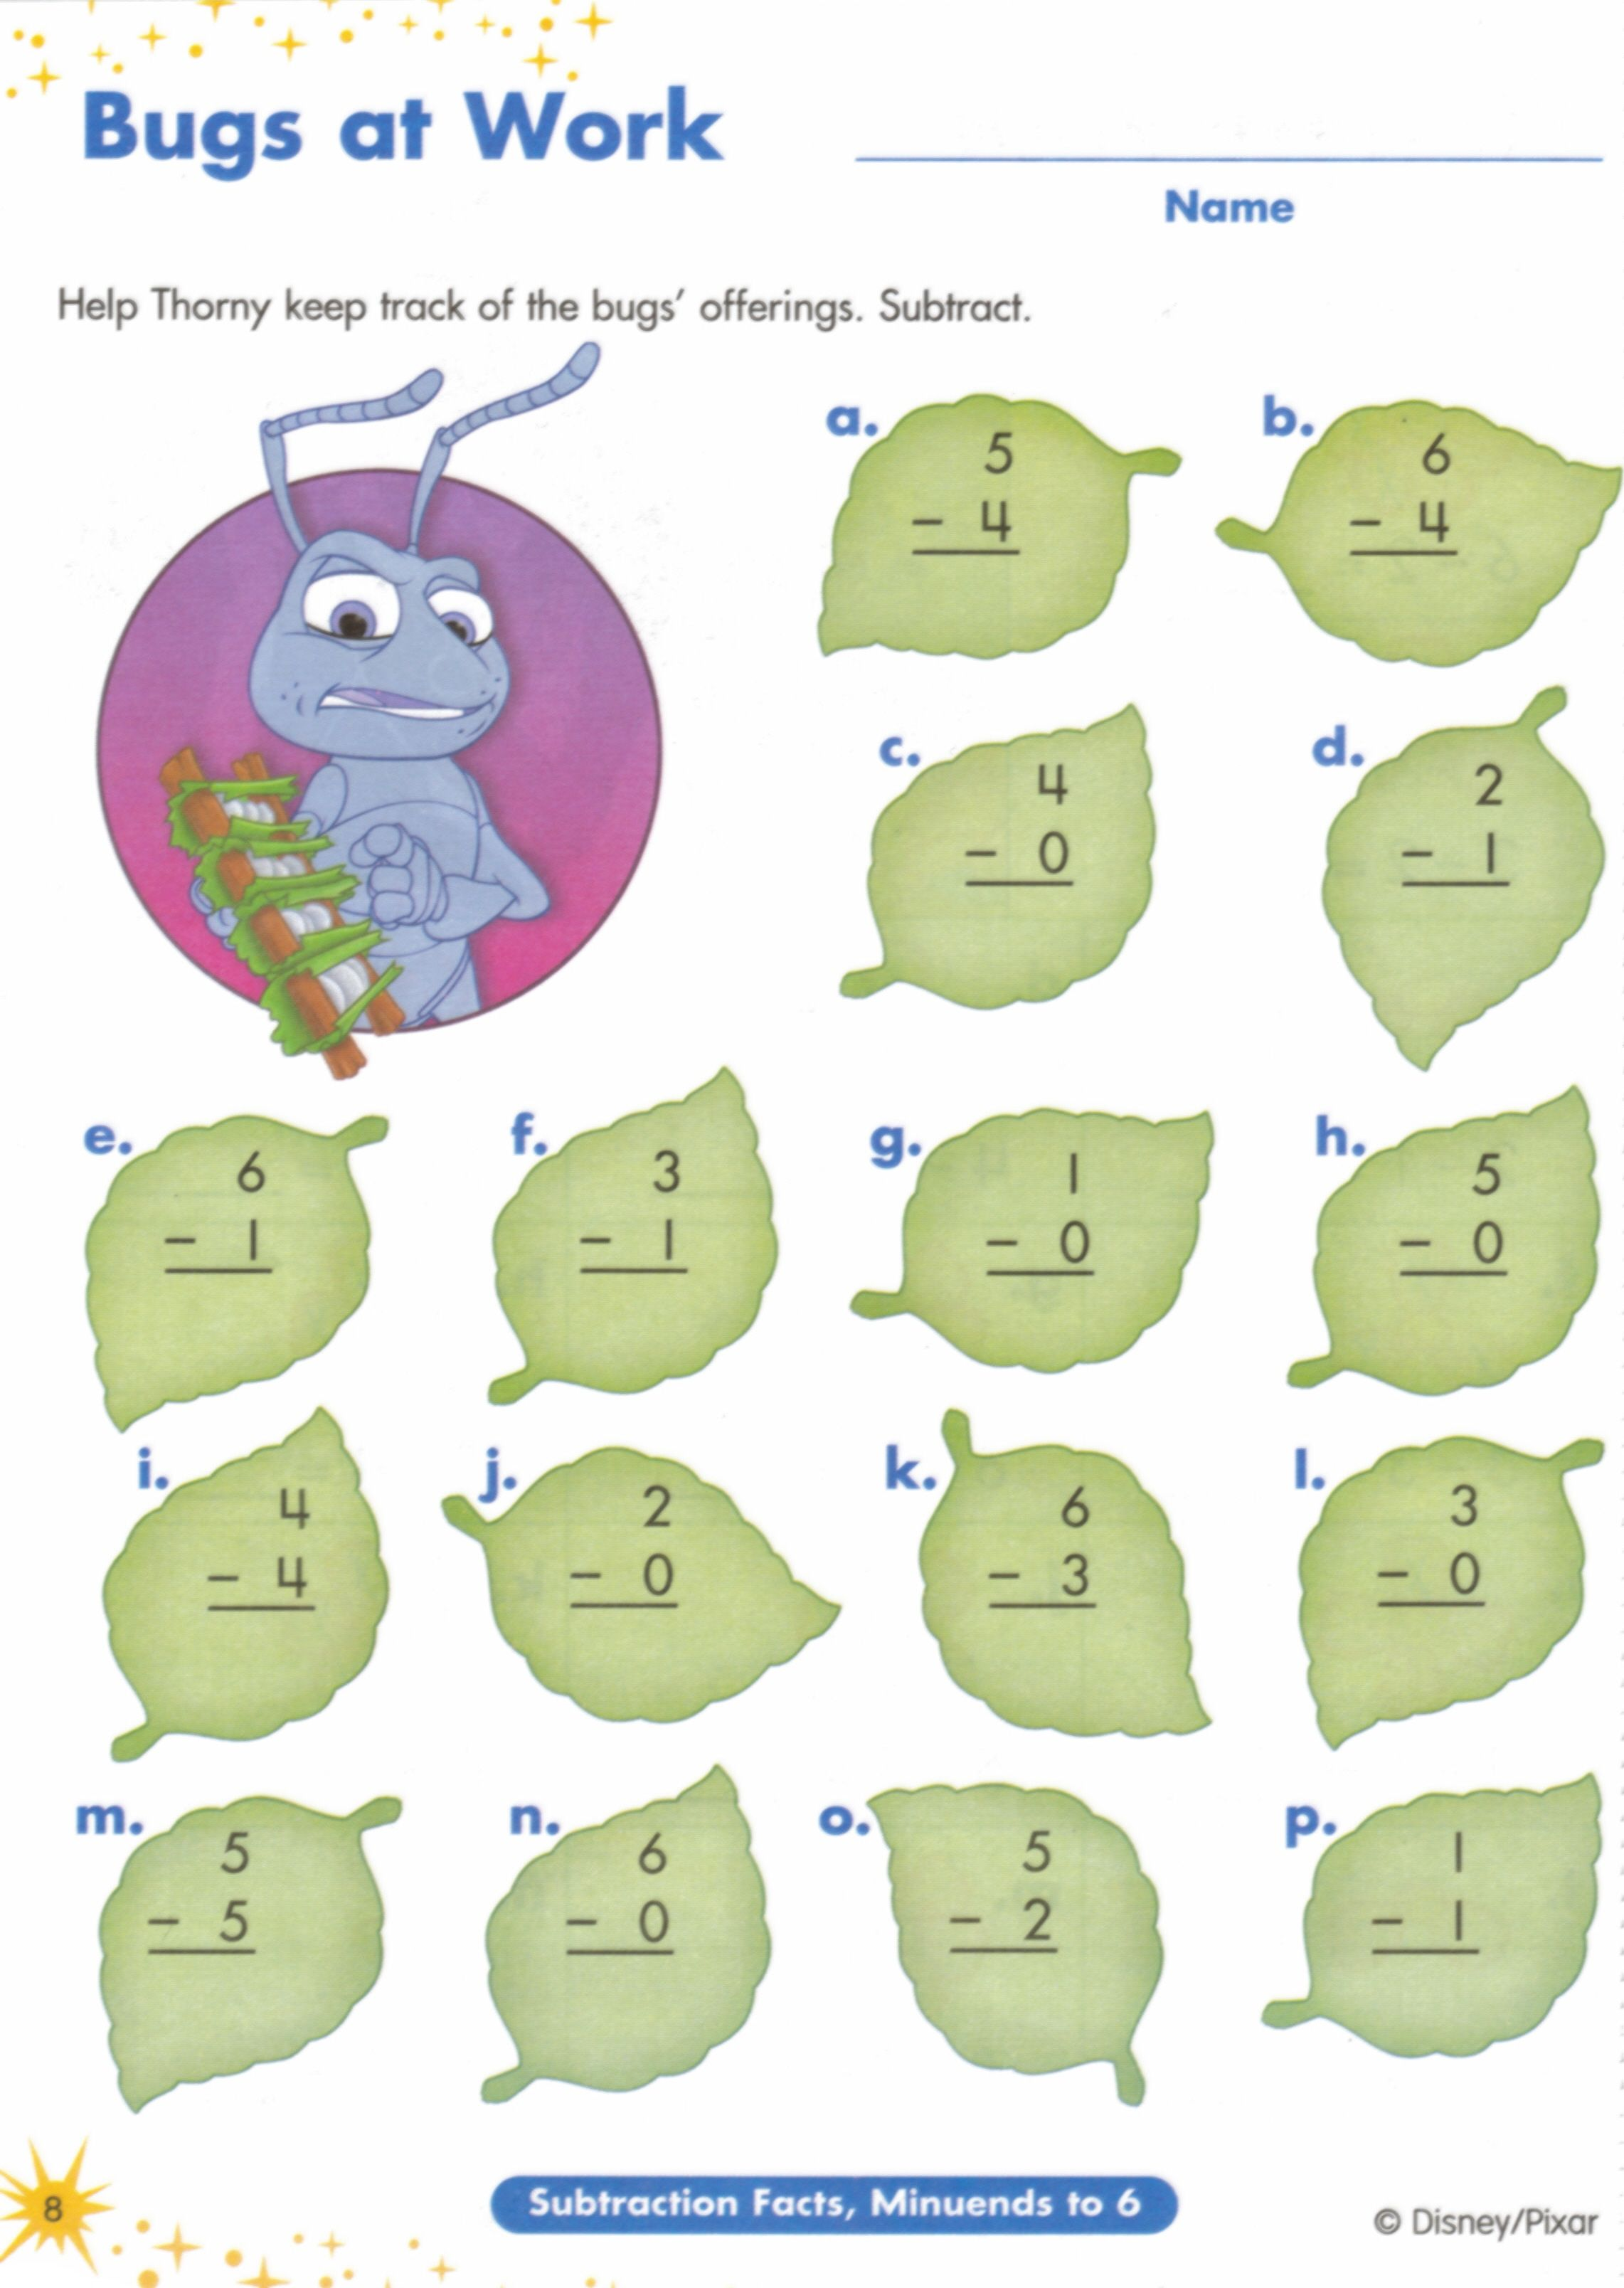 Proatmealus  Personable  Images About Worksheets On Pinterest  Fun Facts For Kids  With Lovely  Images About Worksheets On Pinterest  Fun Facts For Kids Earth Day Worksheets And Jungles With Beauteous Easy  Step Equations Worksheet Also Layers Of The Atmosphere Worksheets In Addition Piano Notes Worksheet And Grammar Worksheets Grade  As Well As Kindergarten Verb Worksheets Additionally Unit Cost Worksheet From Pinterestcom With Proatmealus  Lovely  Images About Worksheets On Pinterest  Fun Facts For Kids  With Beauteous  Images About Worksheets On Pinterest  Fun Facts For Kids Earth Day Worksheets And Jungles And Personable Easy  Step Equations Worksheet Also Layers Of The Atmosphere Worksheets In Addition Piano Notes Worksheet From Pinterestcom